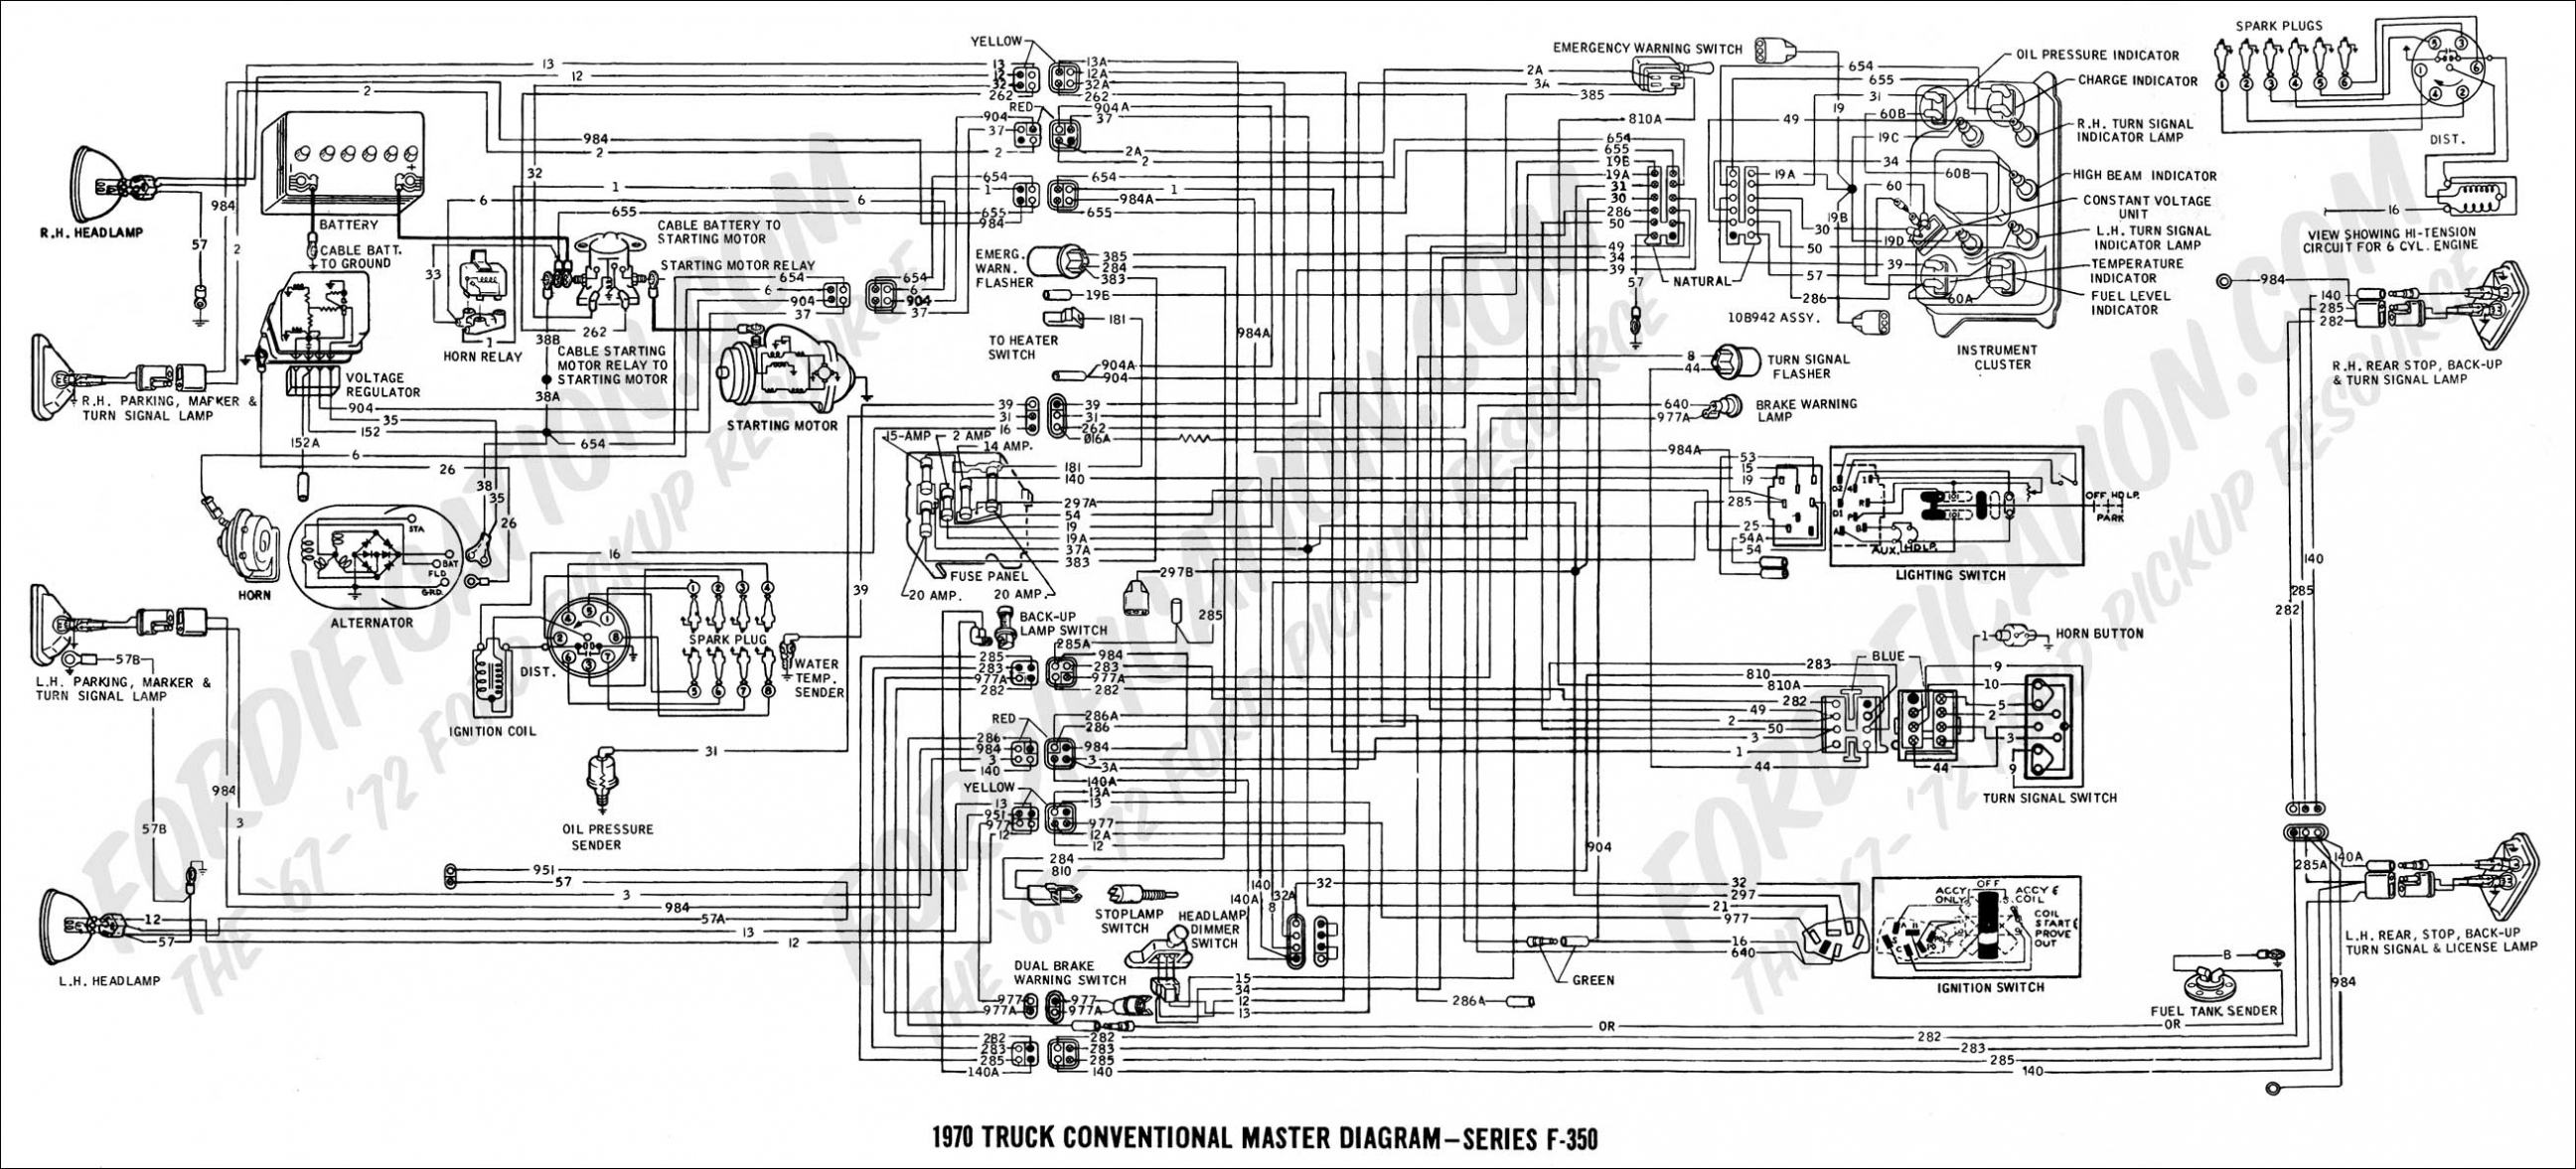 Ford F350 Trailer Wiring Harness Diagram Download – Wiring Diagram - Trailer Wiring Diagram Download